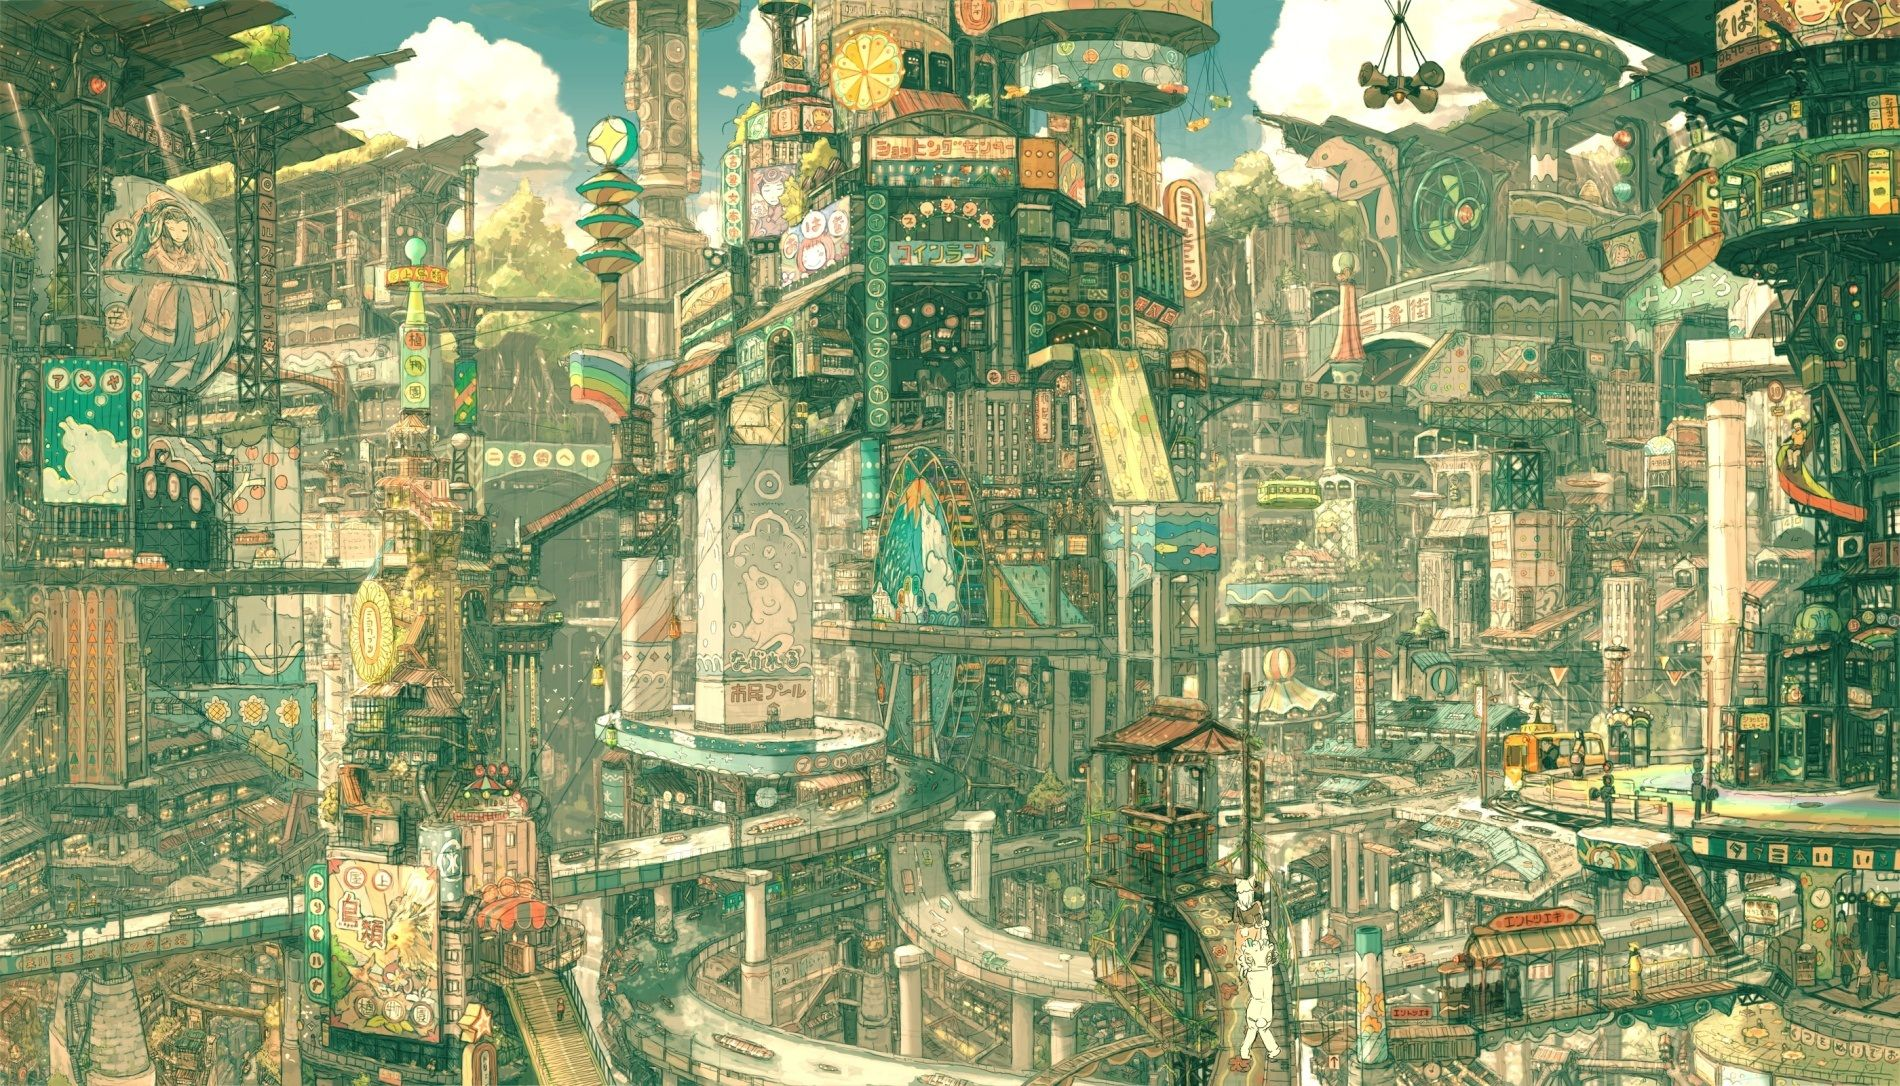 Cityscape City Town Anime Scenery Background Wallpaper Anime Scenery Anime City City Art